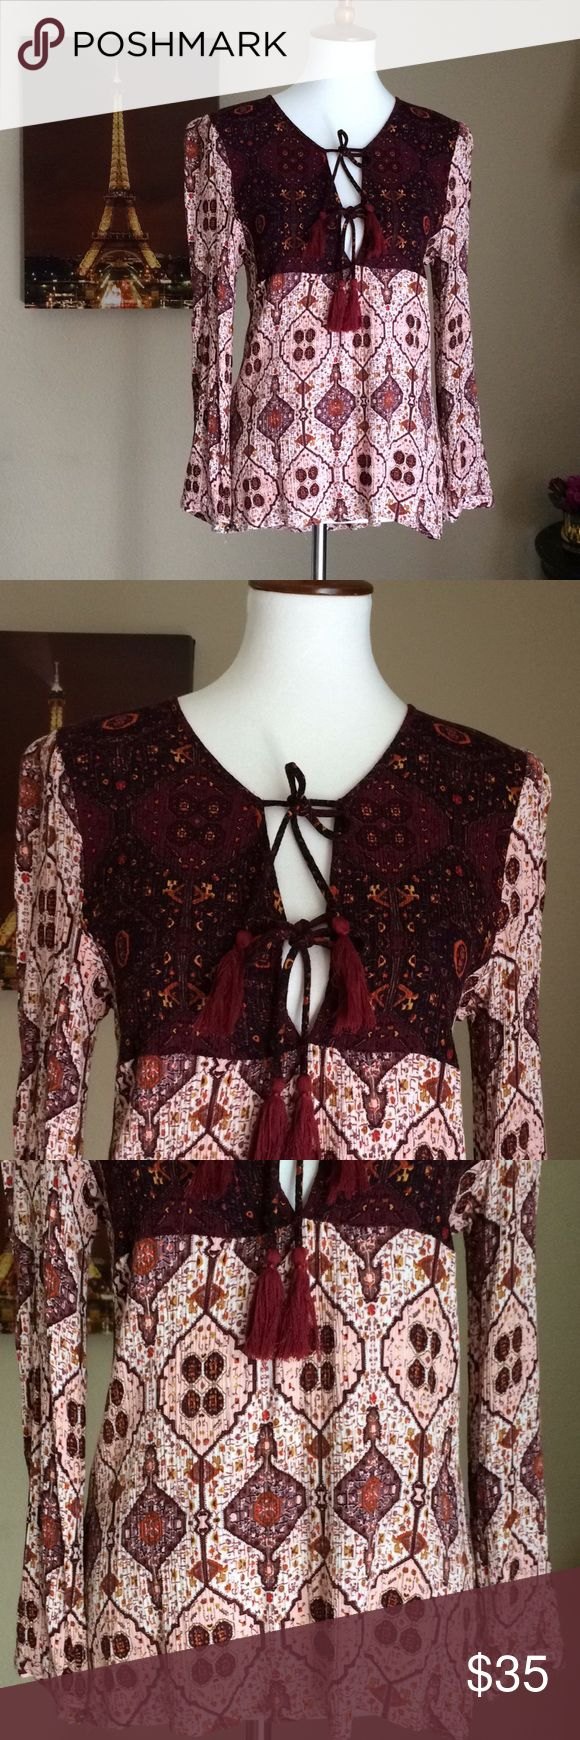 """House of Bohemian Blouse Sz L Length 25"""" to 26"""" approx Bust 17"""" Excellent Like New no flaws Cute bohemian blouse with tassels Boho Top Gorgeous! House of Bohemian Tops Blouses"""